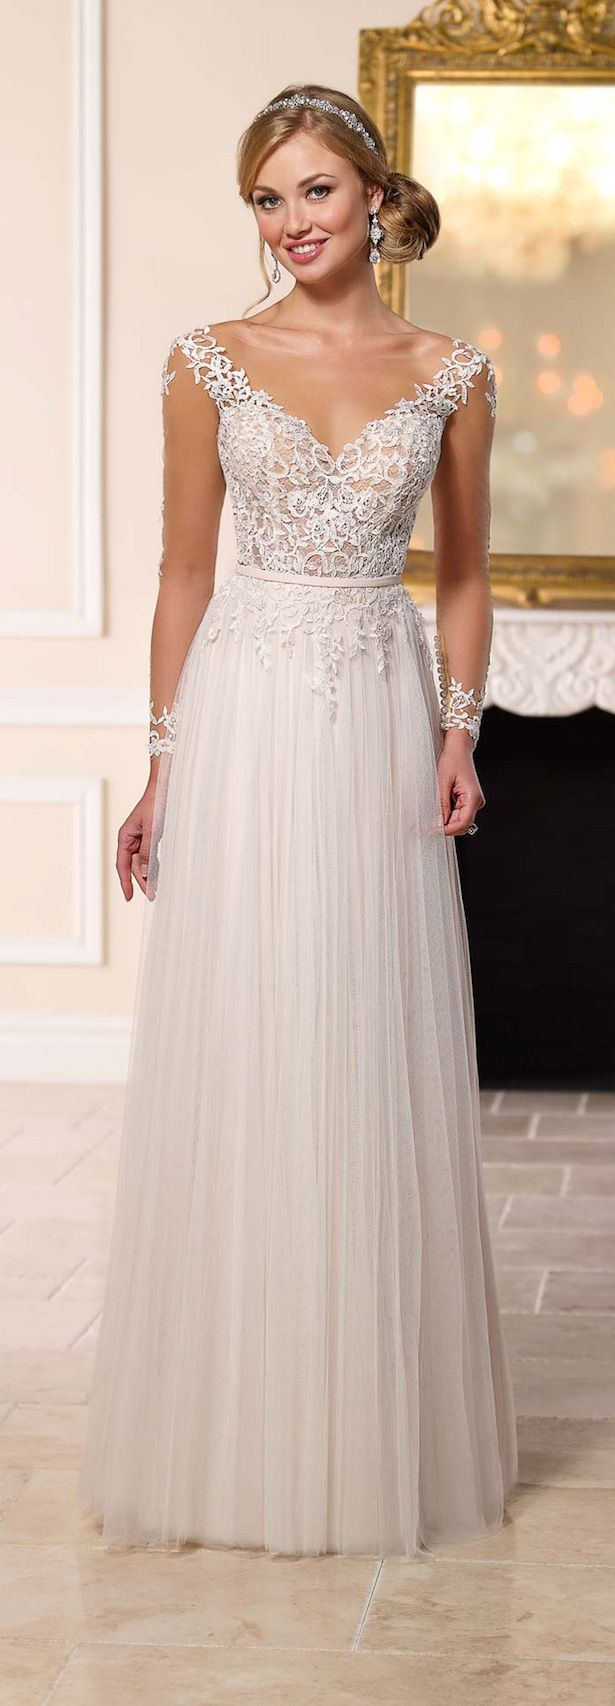 Stella York Spring 2016 Wedding Dress | www.endorajewellery.etsy.com